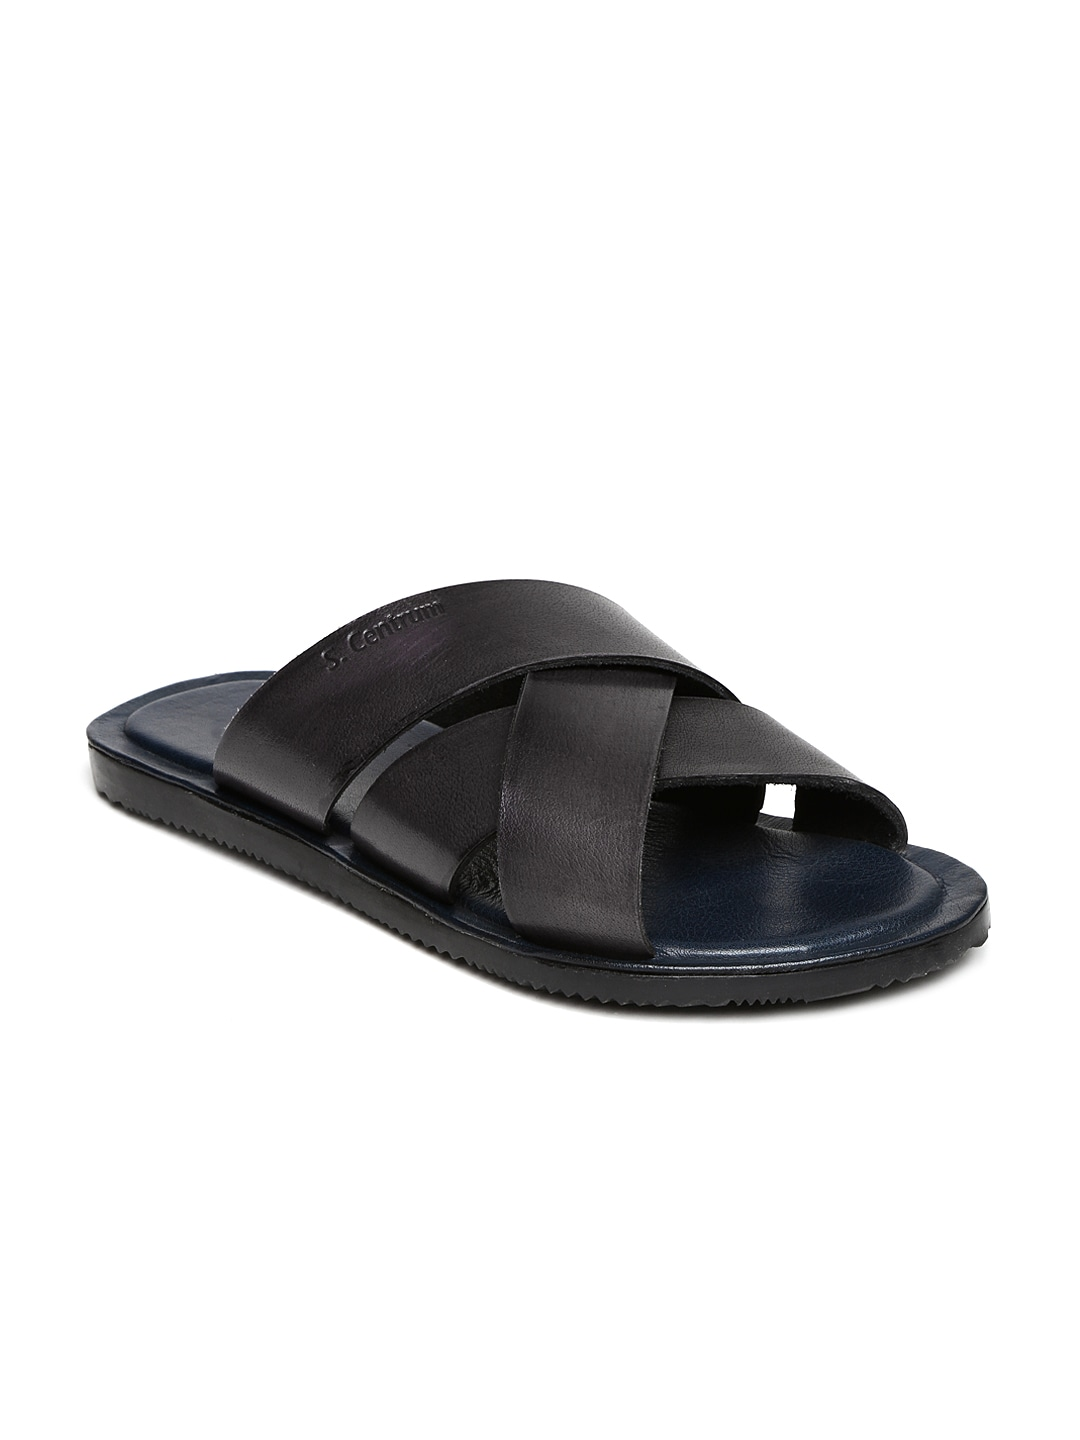 Style Centrum Men Black Leather Sandals